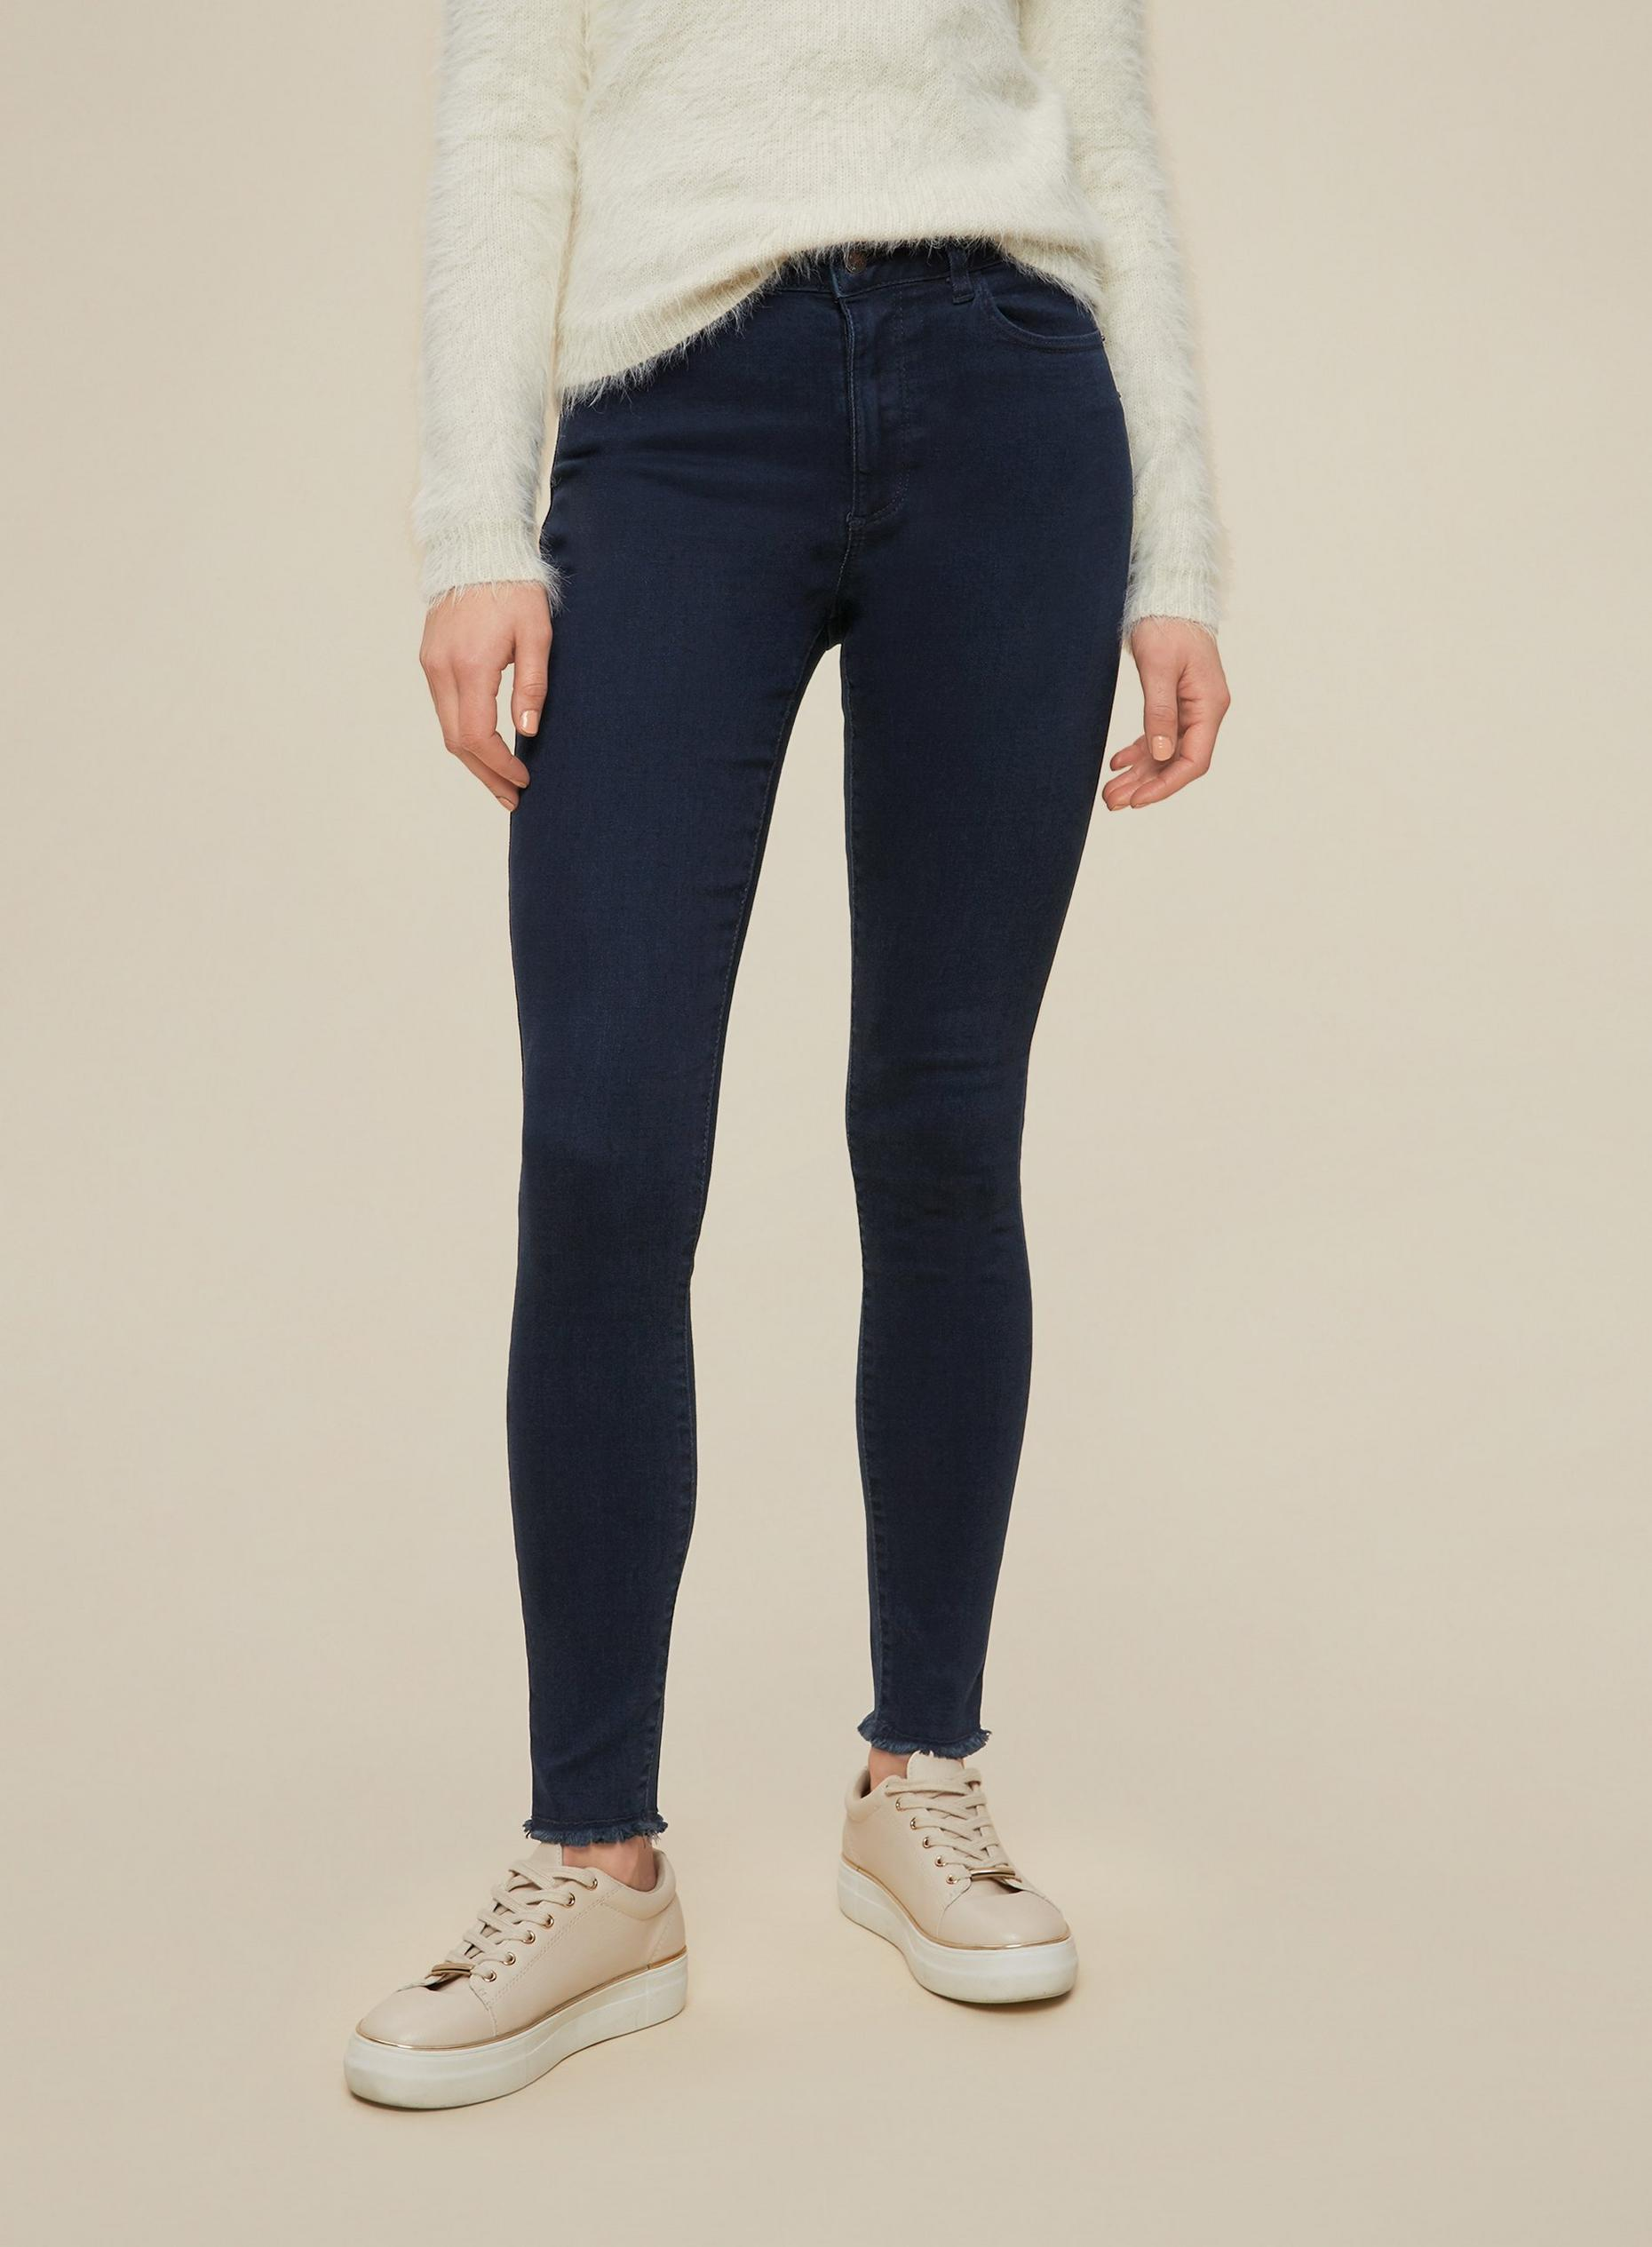 Blue Black Regular Raw Hem Alex Skinny Jeans